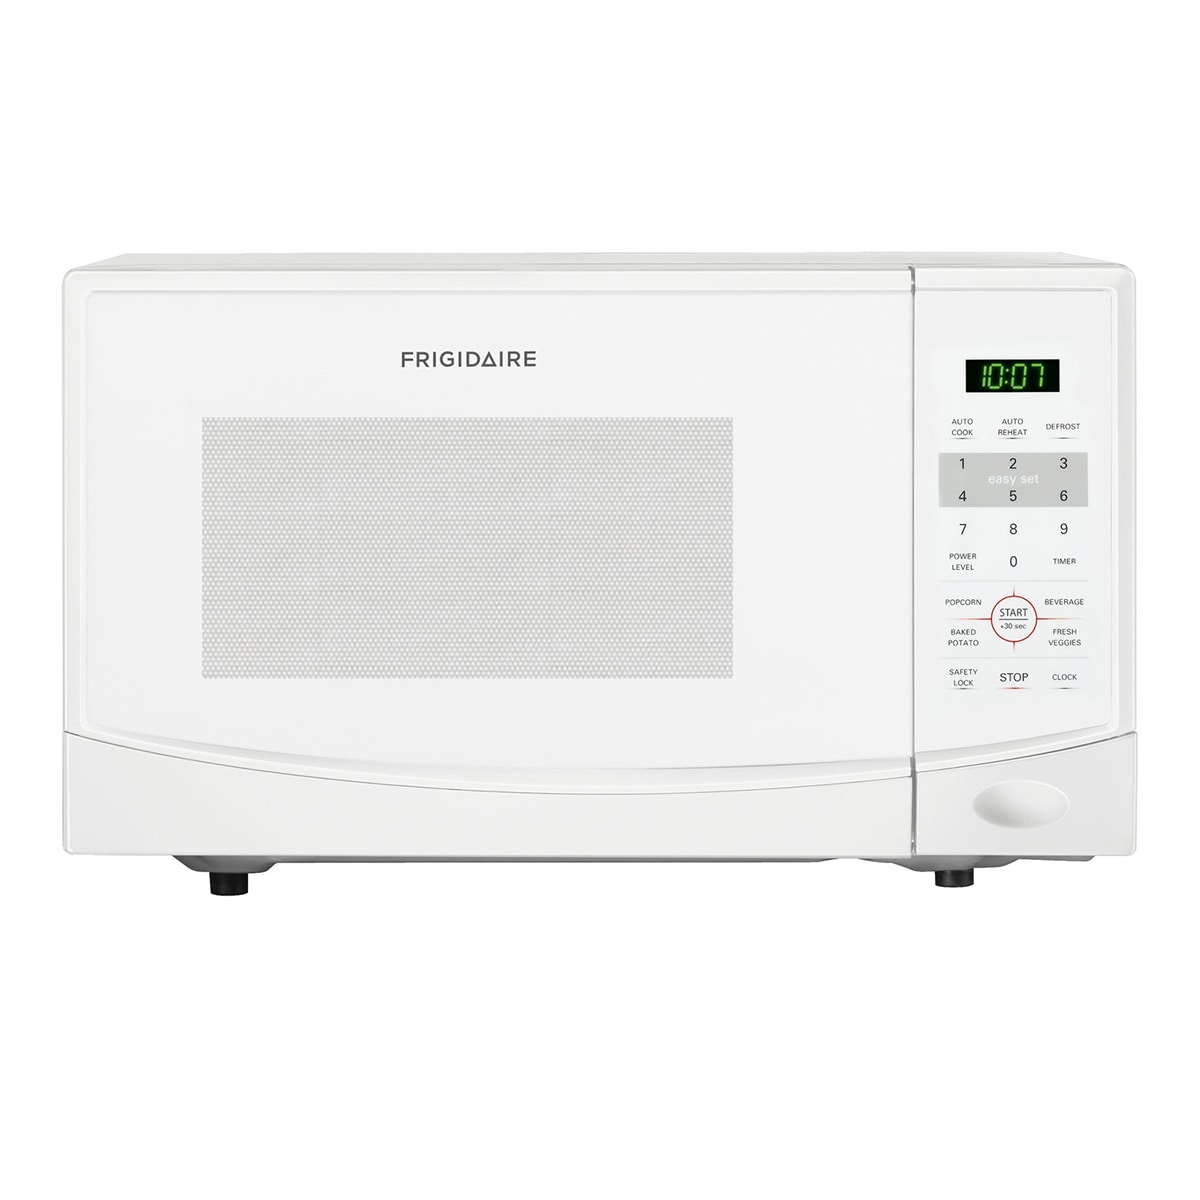 Frigidaire 0.9-cubic-foot White Countertop Microwave Oven...